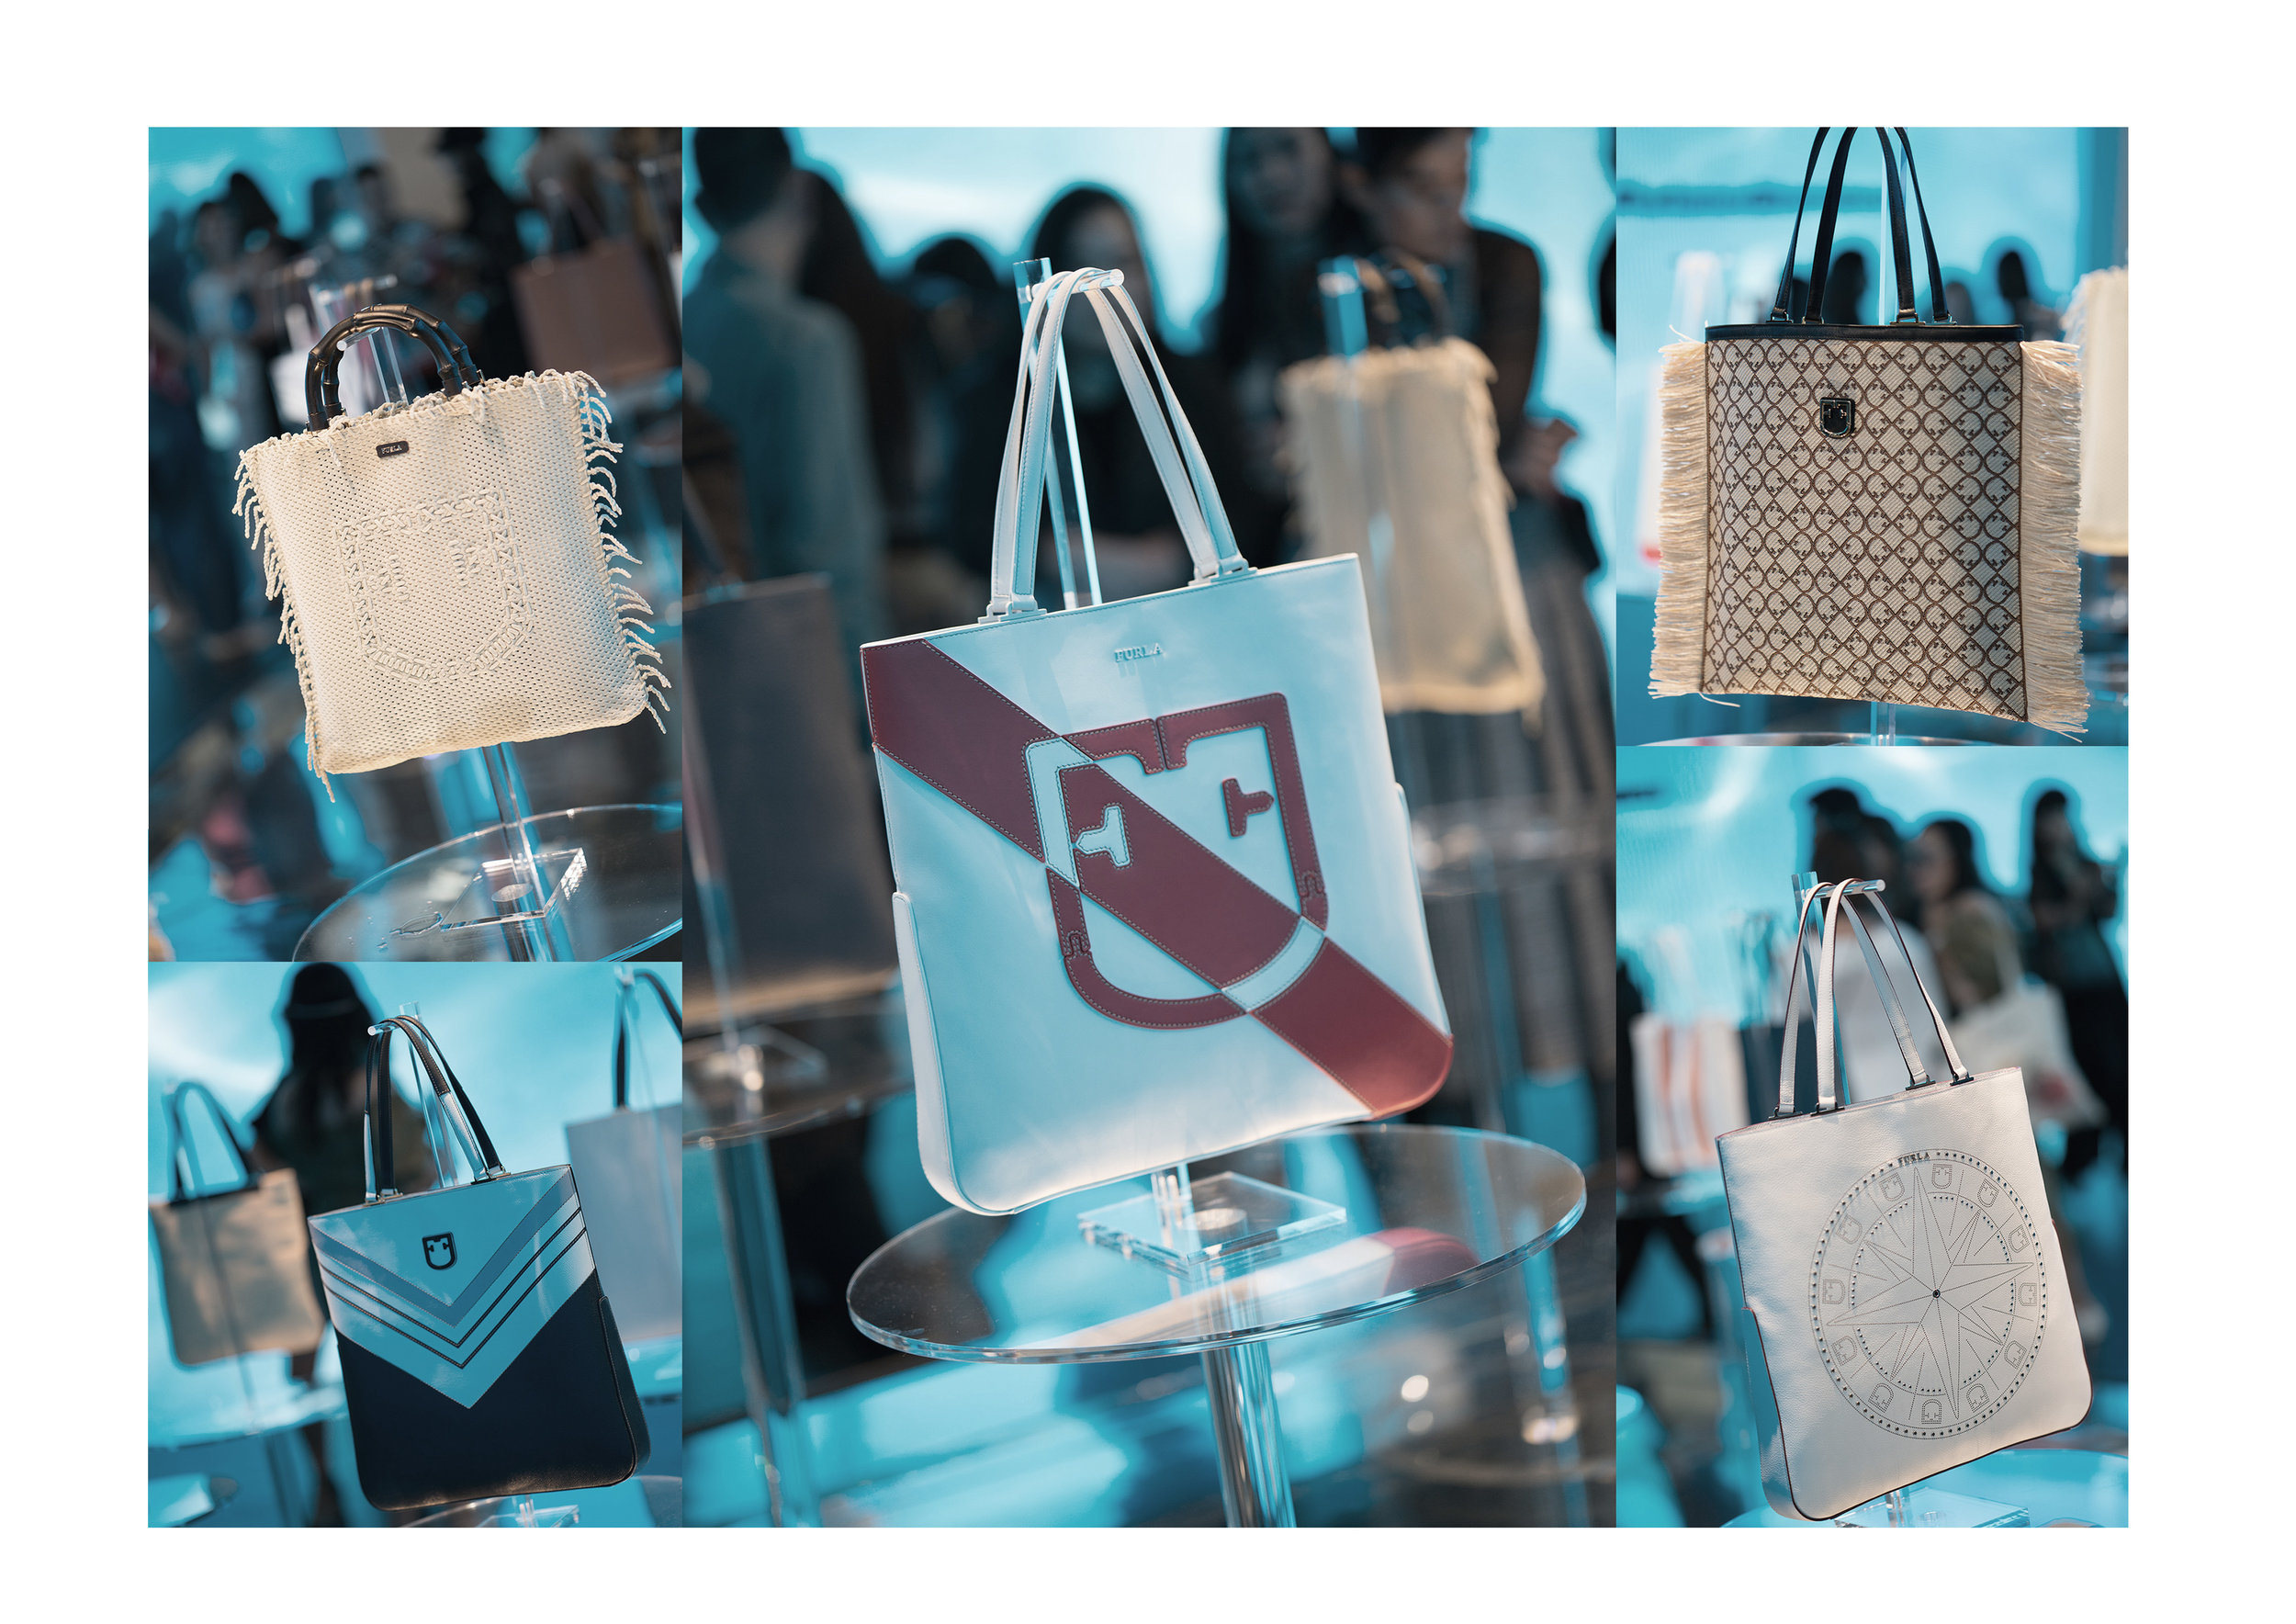 Showcasing the Furla's Spring Summer 2019 Collection